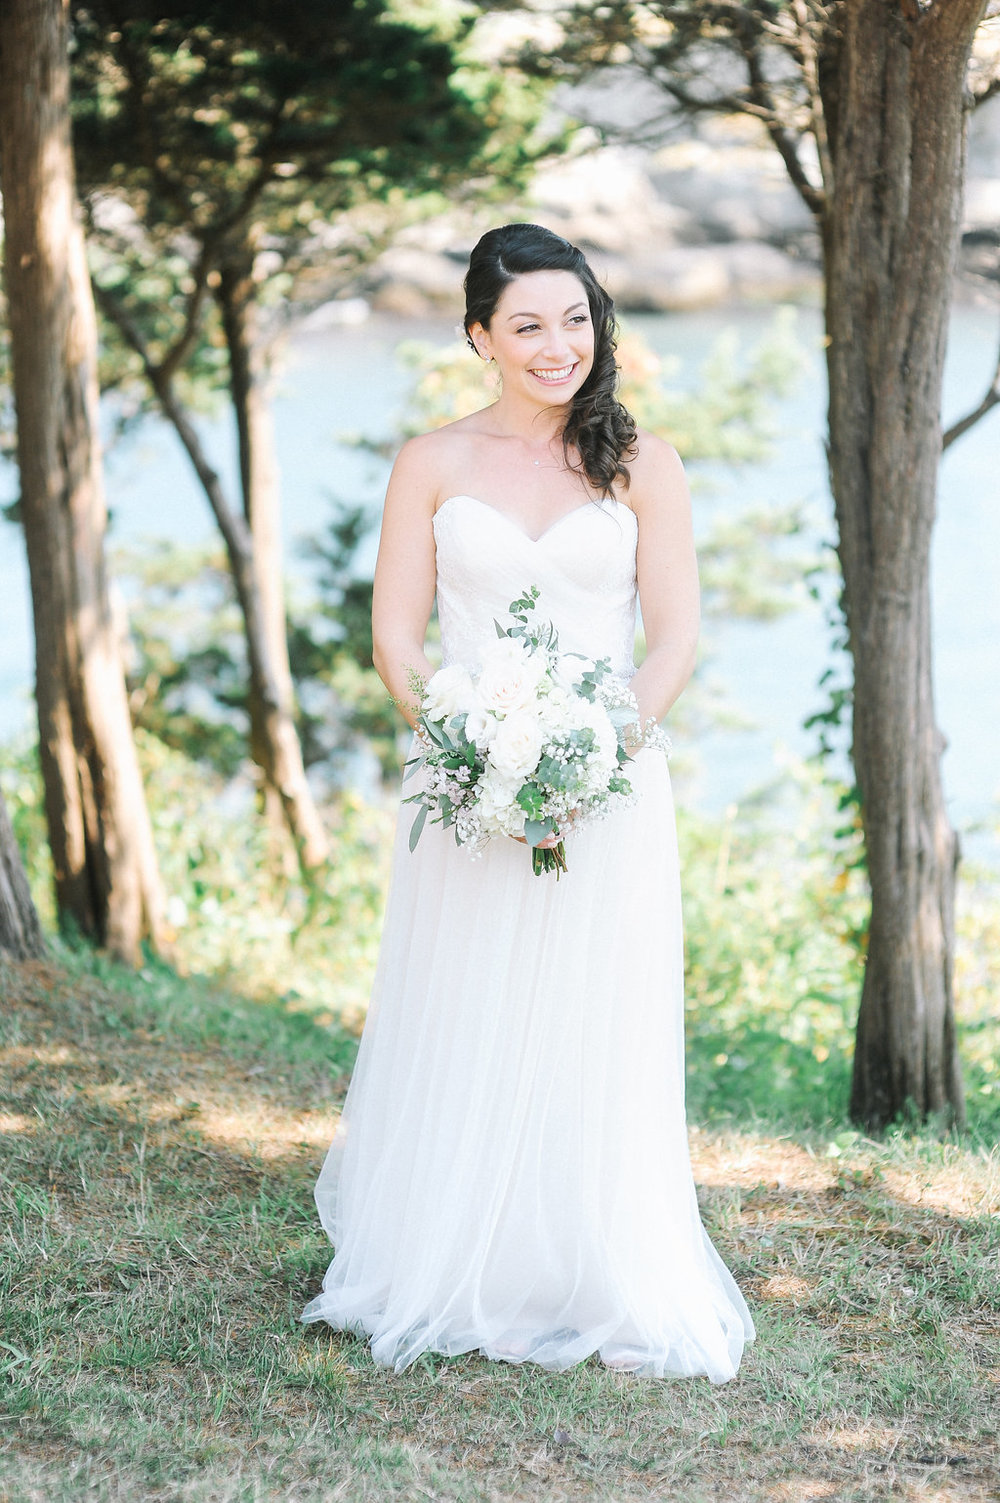 BrideGroomPortraits_Dragonline_Studios_Jamestown_RI_Wedding-48.jpg